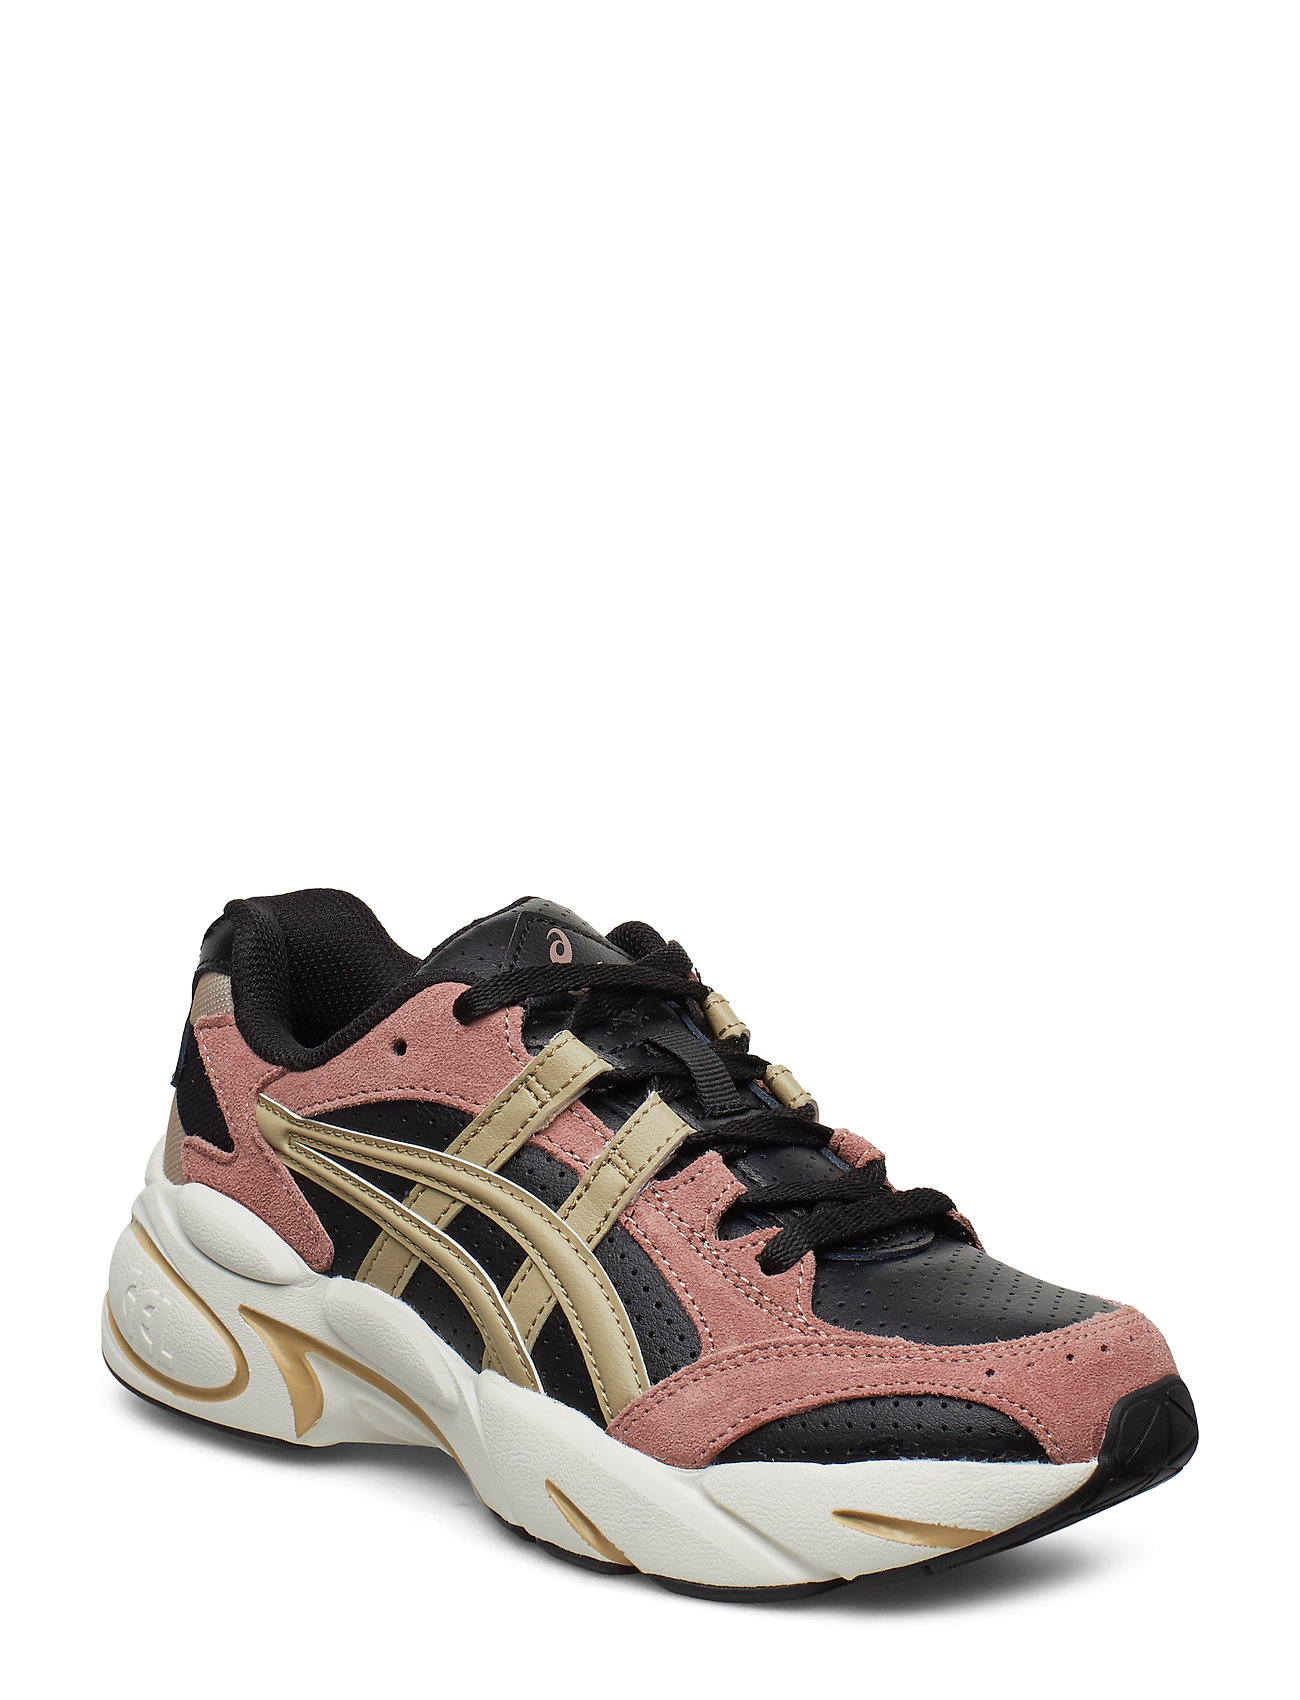 ASICS Gel-Bnd Shoes Sport Shoes Running Shoes Pink ASICS